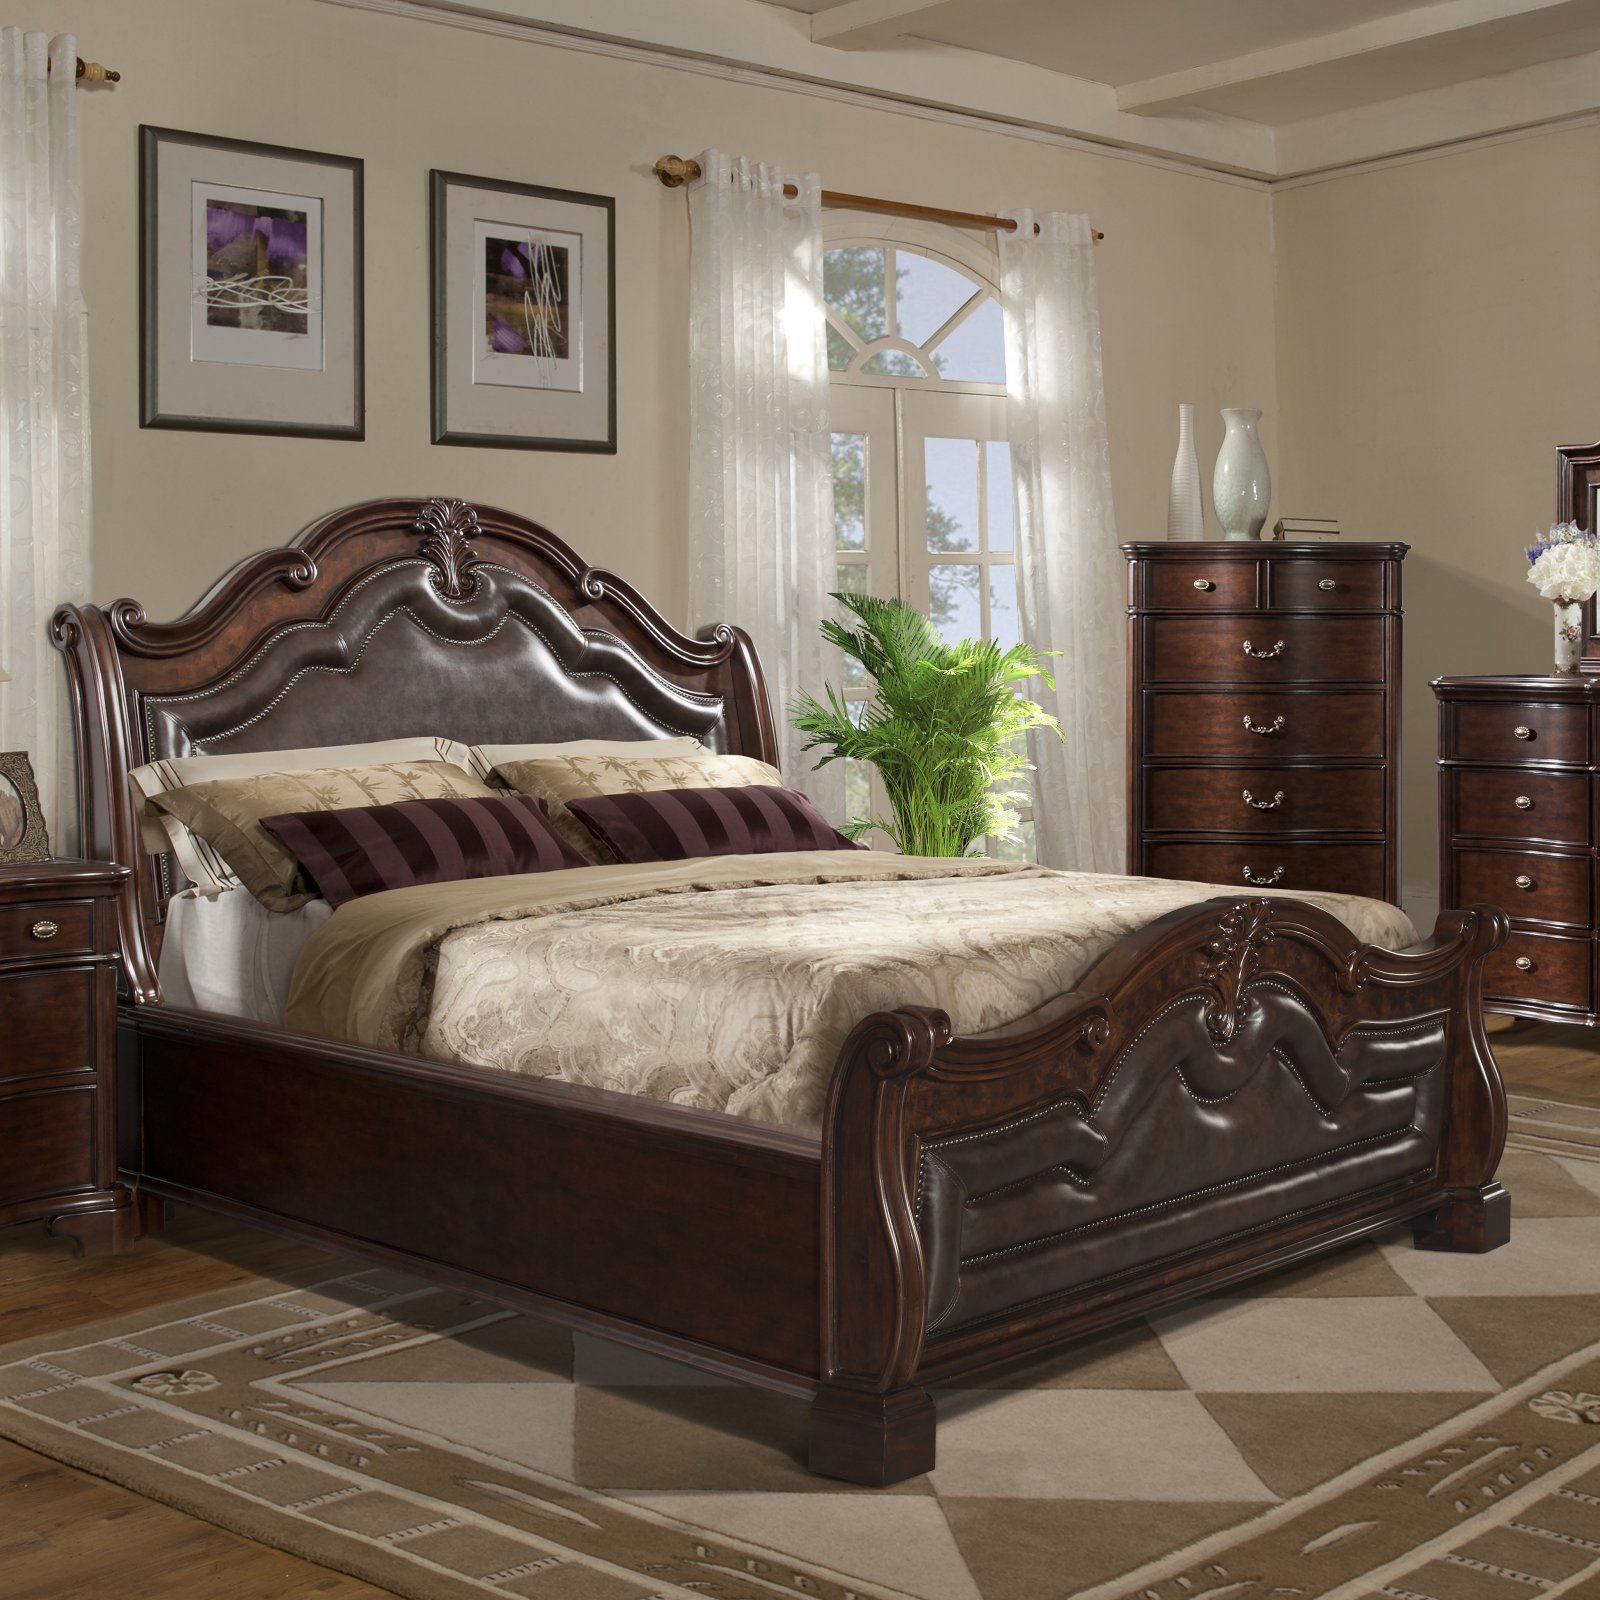 Element Picket House Furnishings Tabasco Storage Sleigh Bed